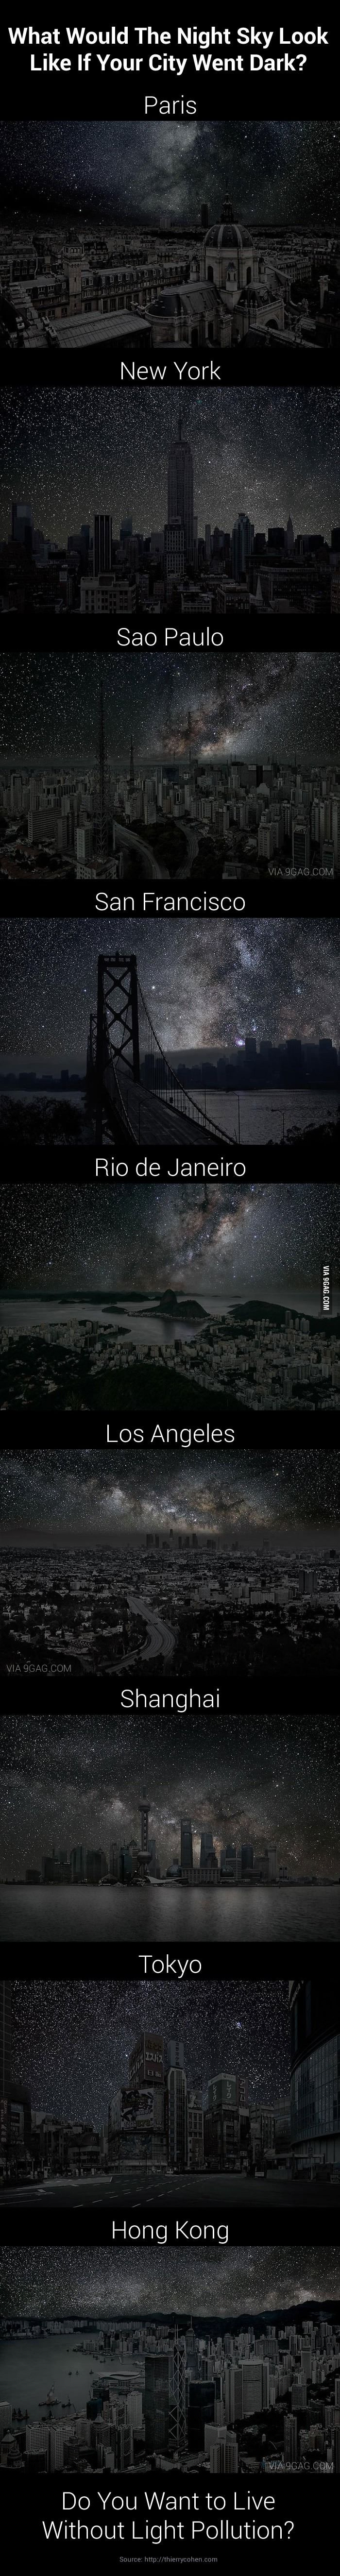 9 Amazing Night Sky of 9 Darkened Cities by thierrycohen via 9gag #Night_Sky #Light_Pollution Likes or repins would be amazing. Also don't forget to listen to All My Love by Noelito Flow. Thank you